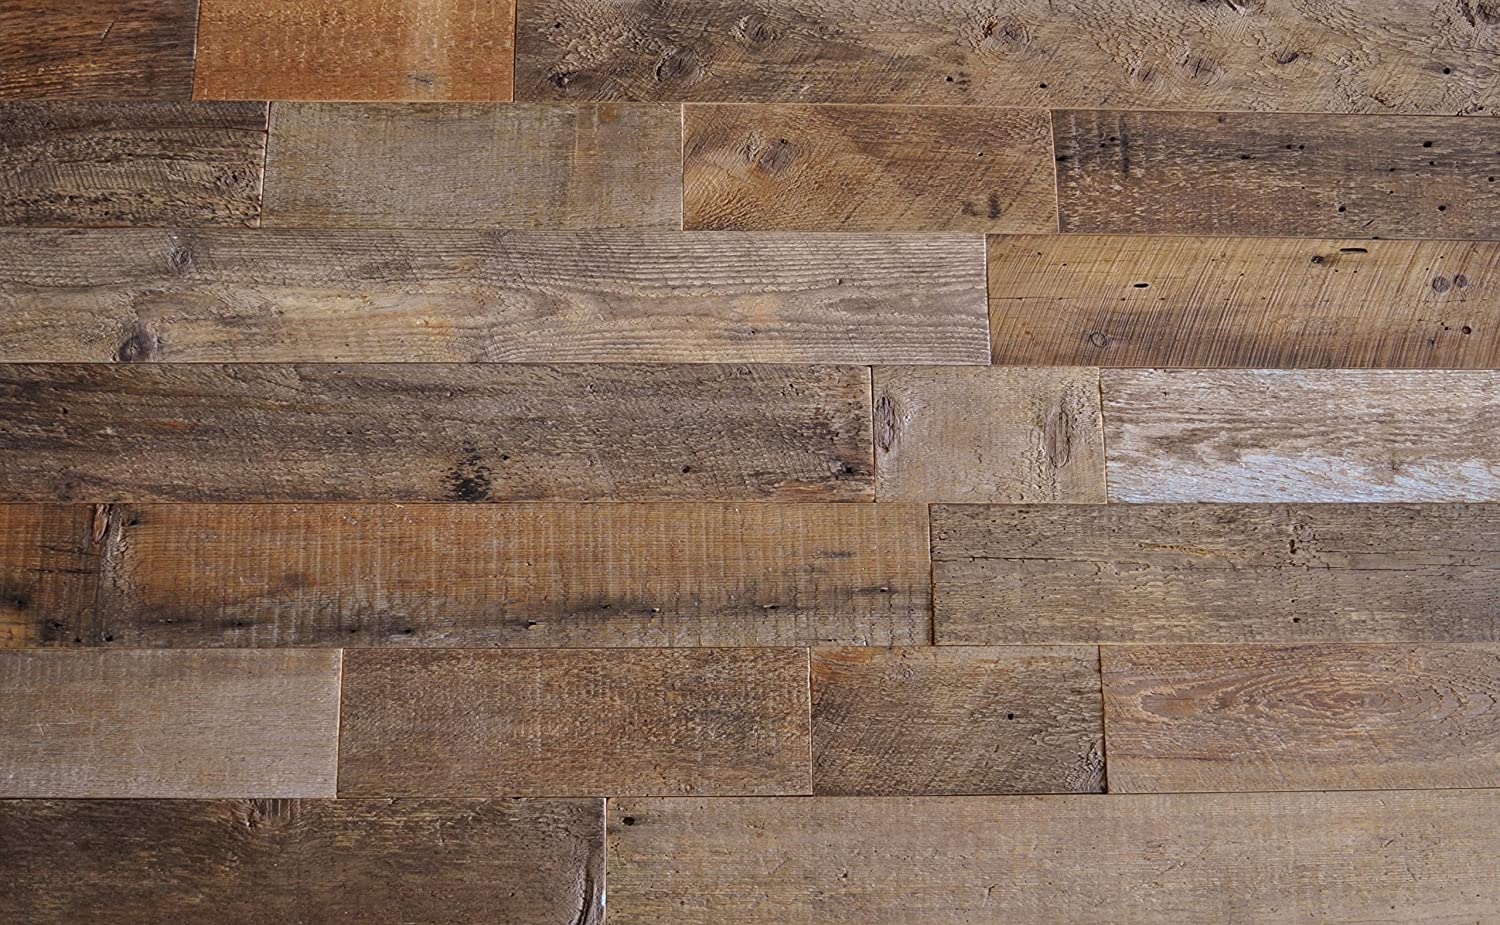 EAST COAST RUSTIC Reclaimed Barn Wood Wall Panels - Easy Install Rustic Wood DIY Wall Covering for Feature Walls (20 Sq Ft - 3.5 Wide, Brown Natural)